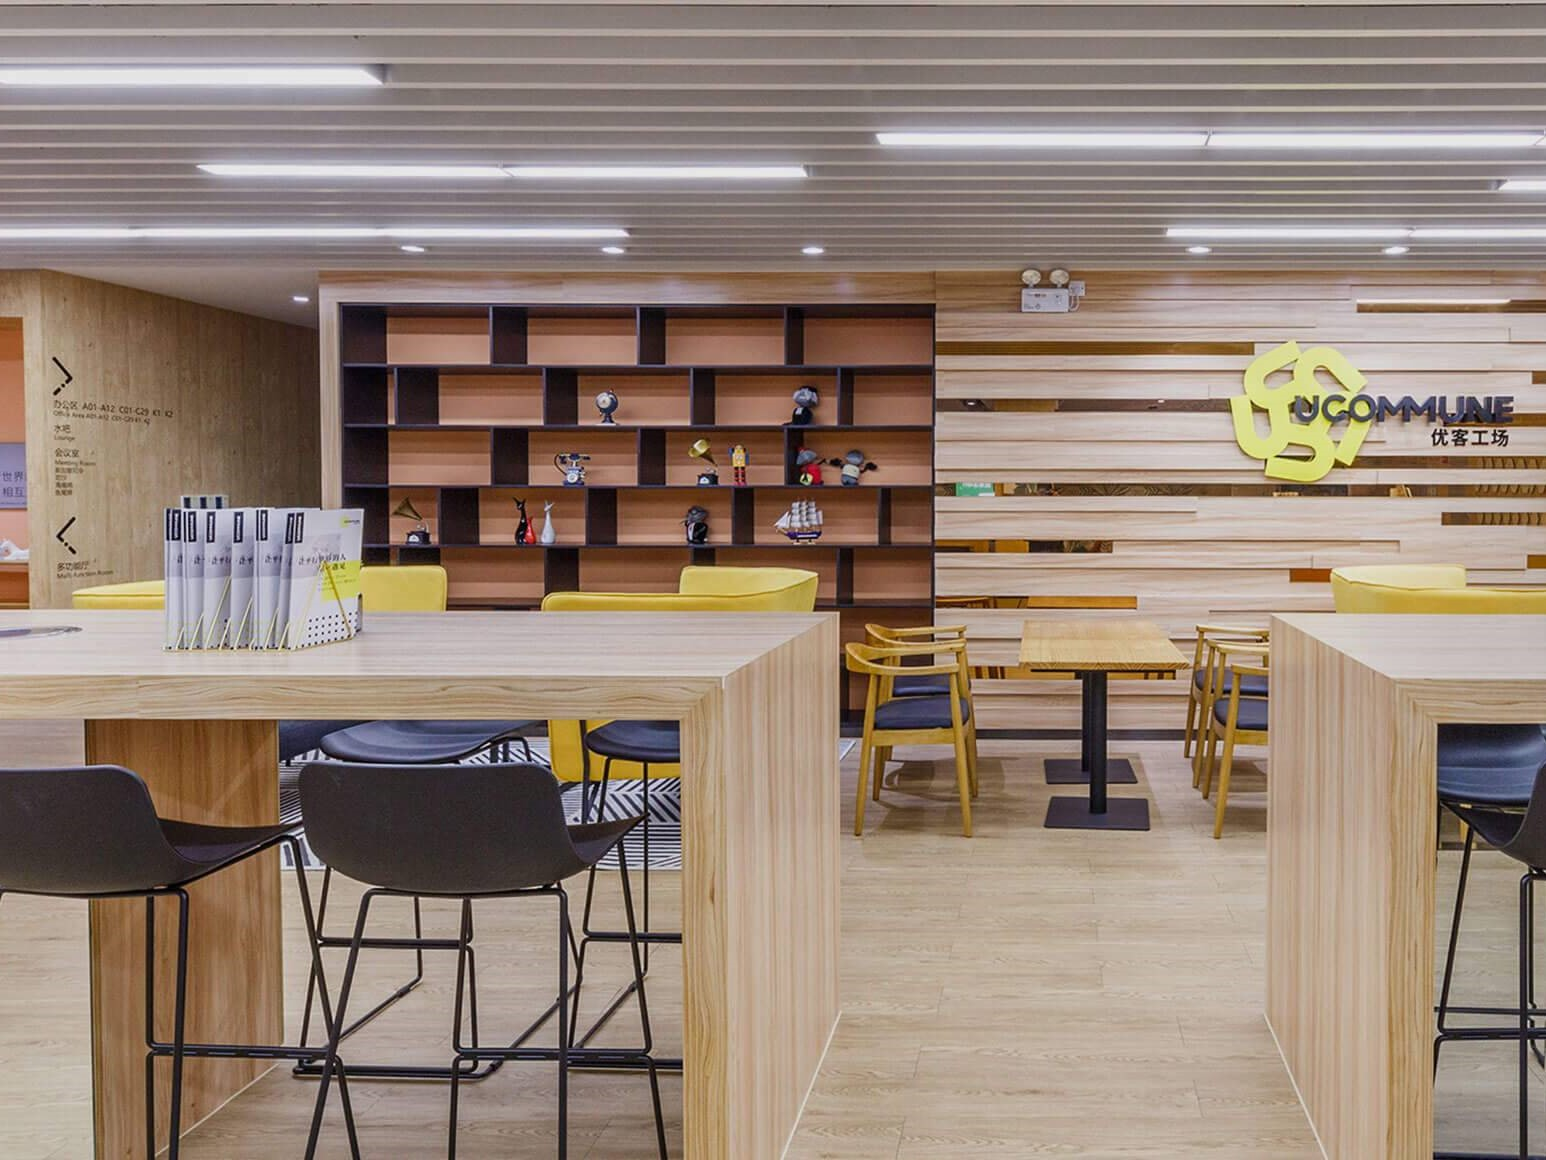 The Curse of Co-working: Ucommune Pitches Different Business from WeWork